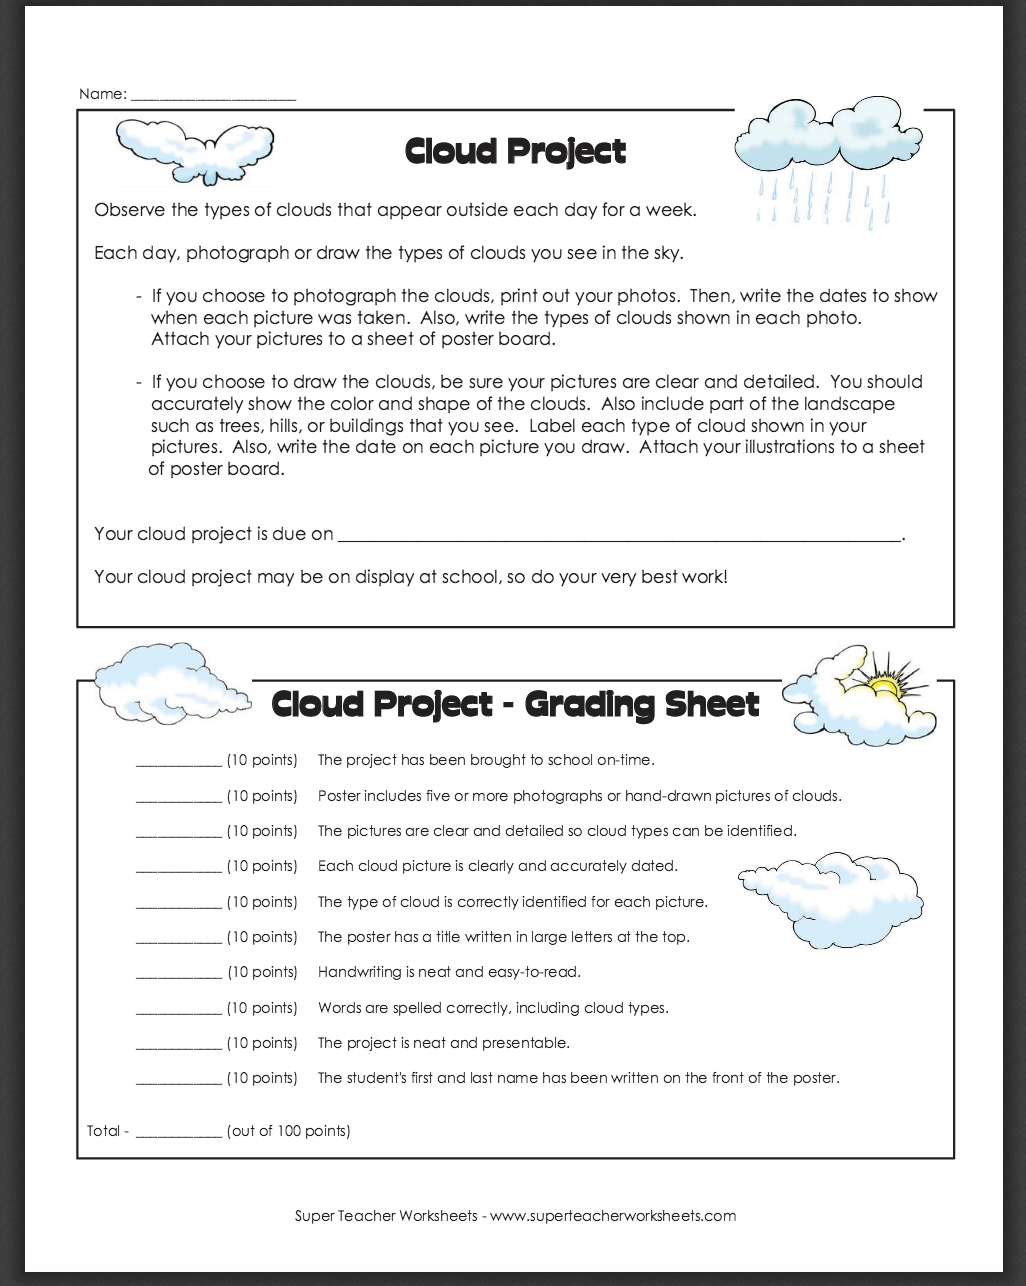 worksheet cloud worksheets grass fedjp worksheet study site. Black Bedroom Furniture Sets. Home Design Ideas